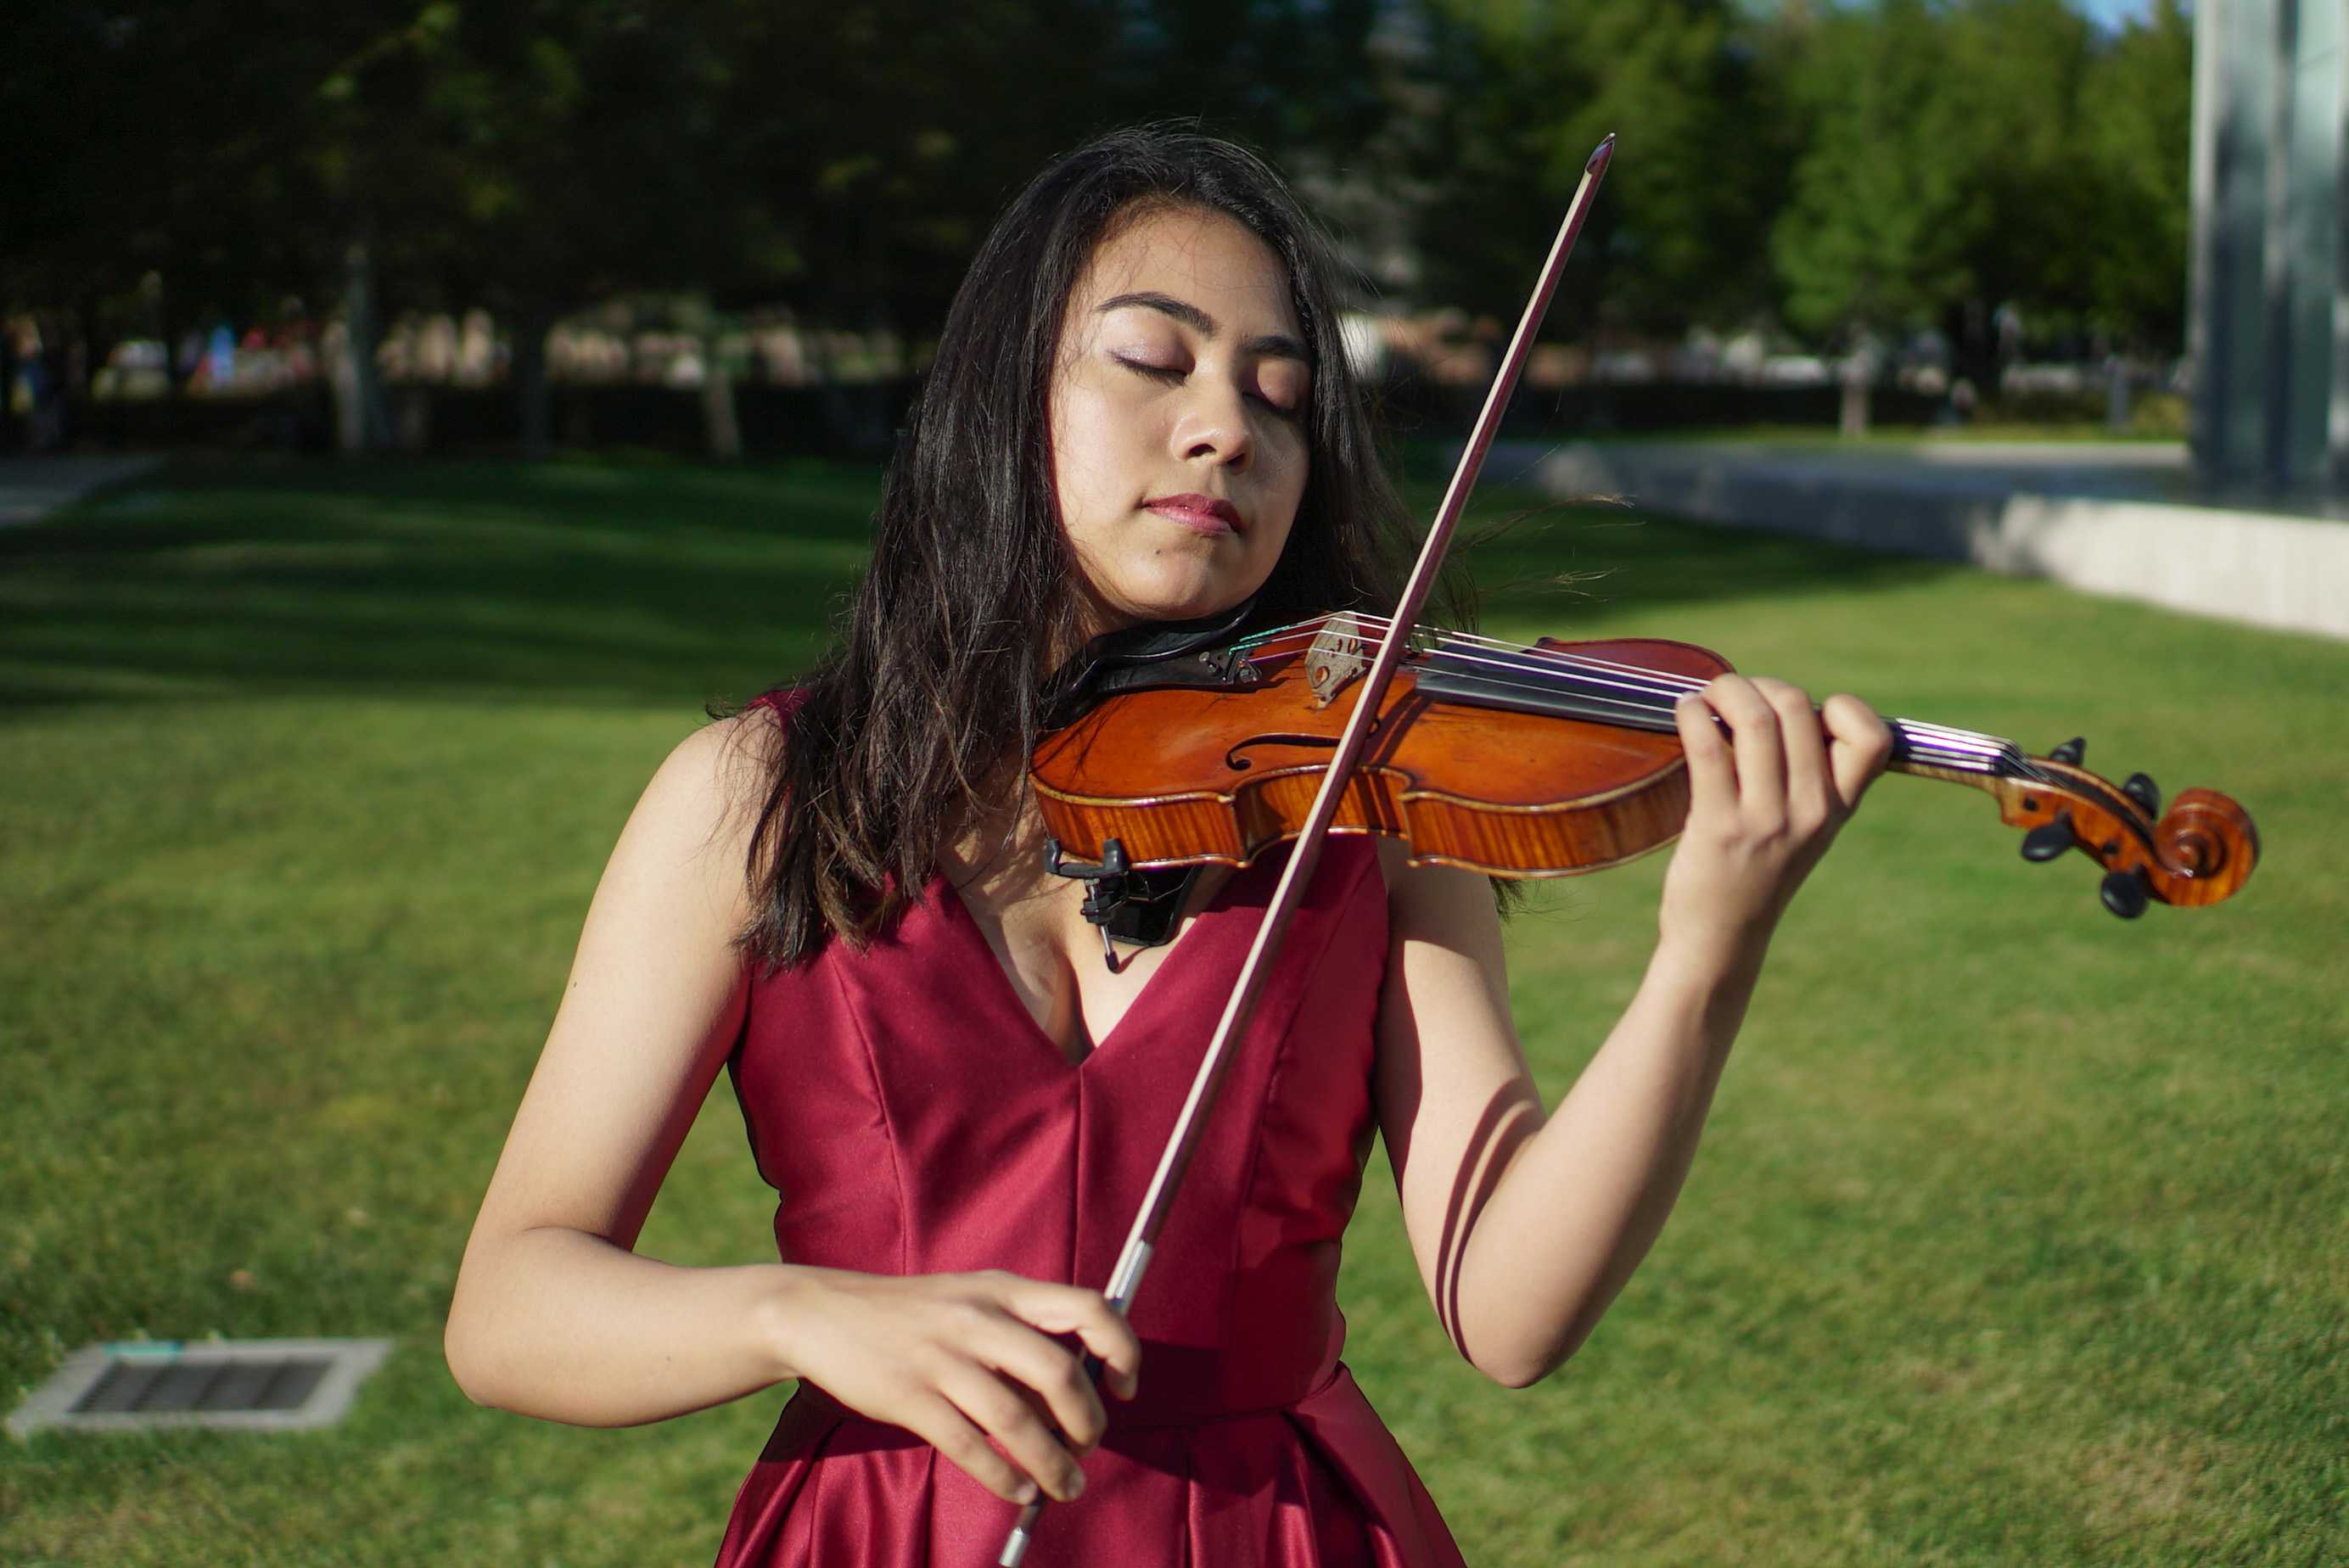 Alisa Luera, 19-years-old, is the youngest student to hold the title of first violinist in the Honors String Quartet. Photo credit: Leo Moneymaker